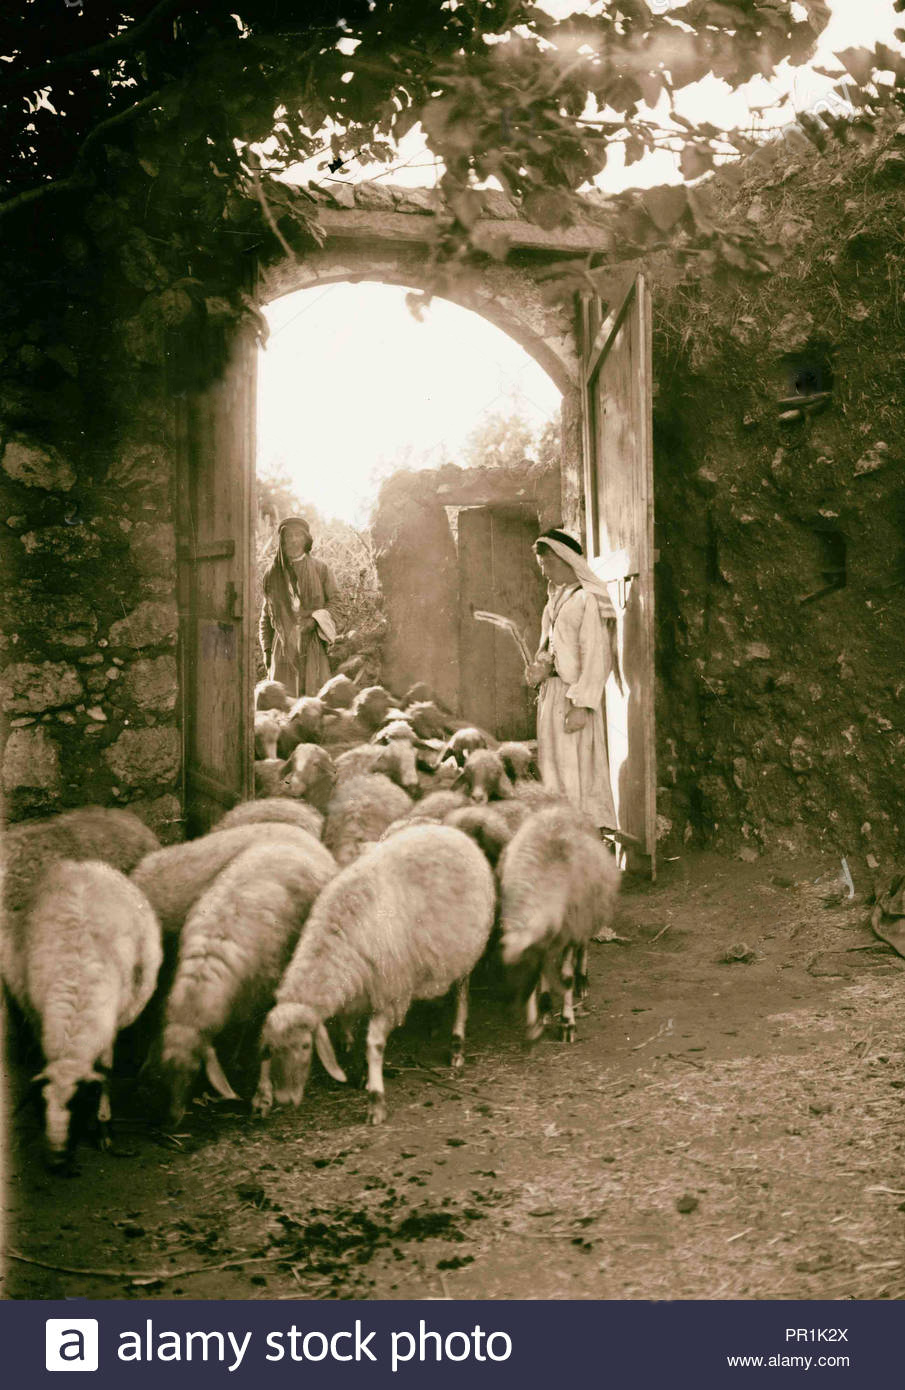 In biblical times, the sheep were made to pass under a shepherd's rod as he counted them; every tenth animal was then set aside as a tithe to the Lord (Leviticus 27:32).